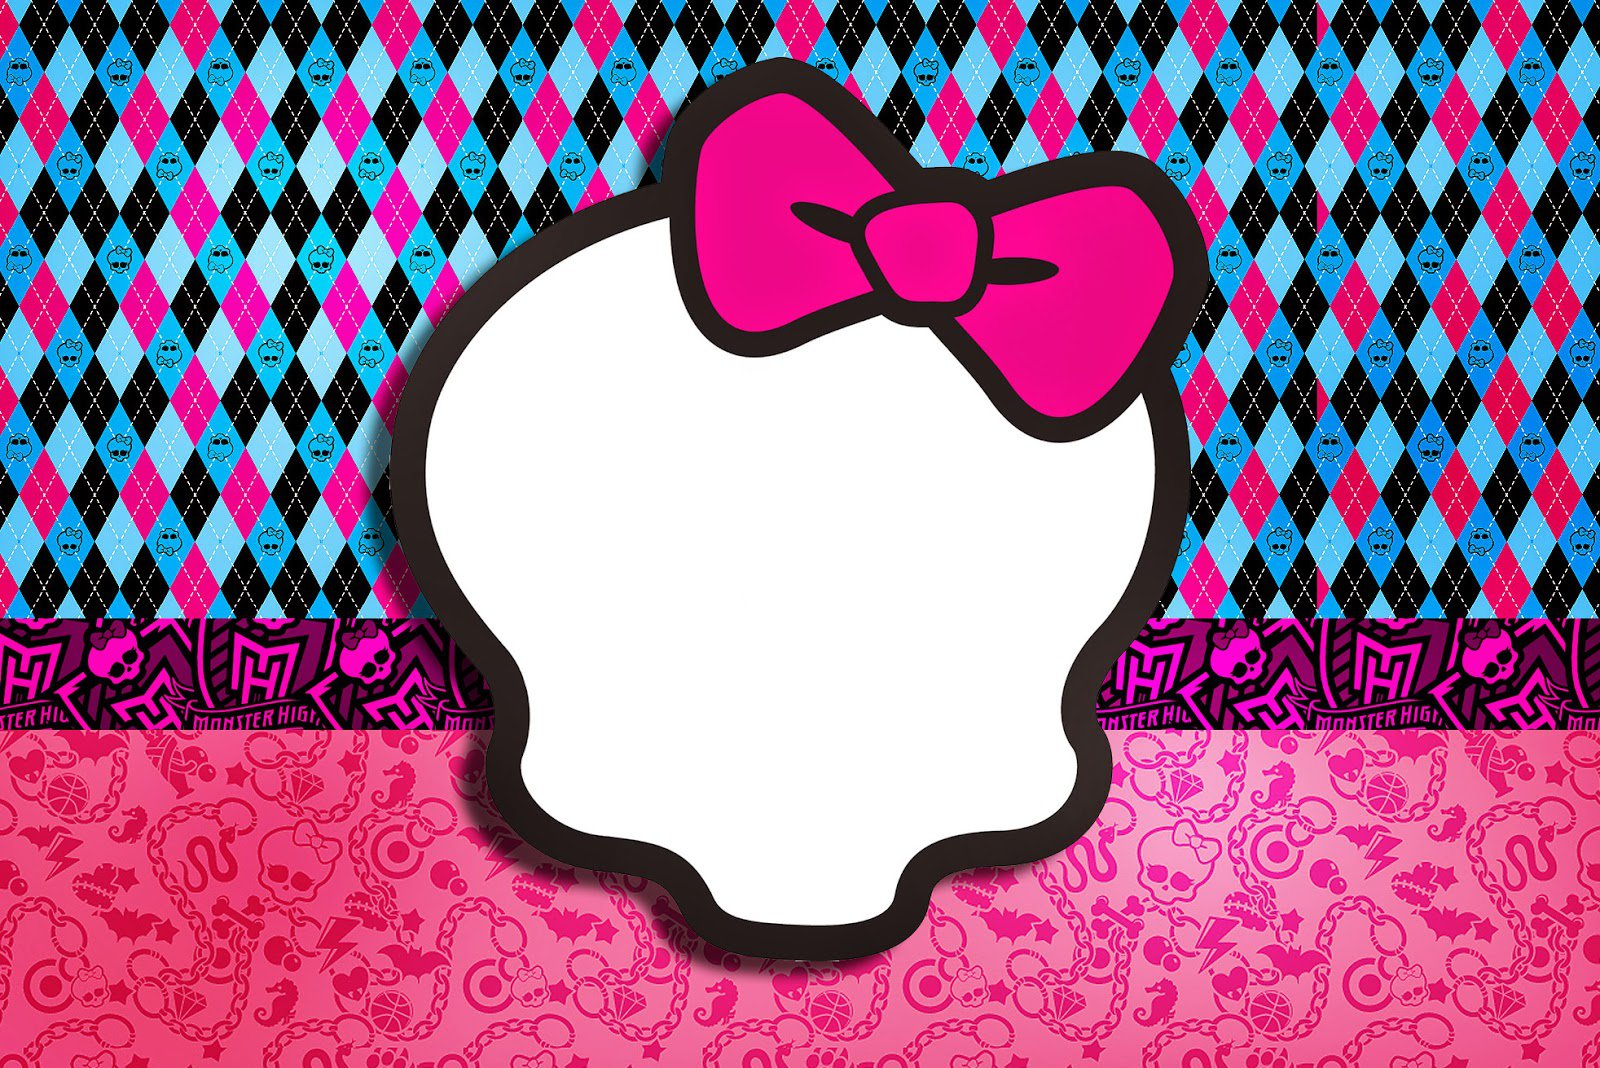 Monster High Invitation Backgrounds